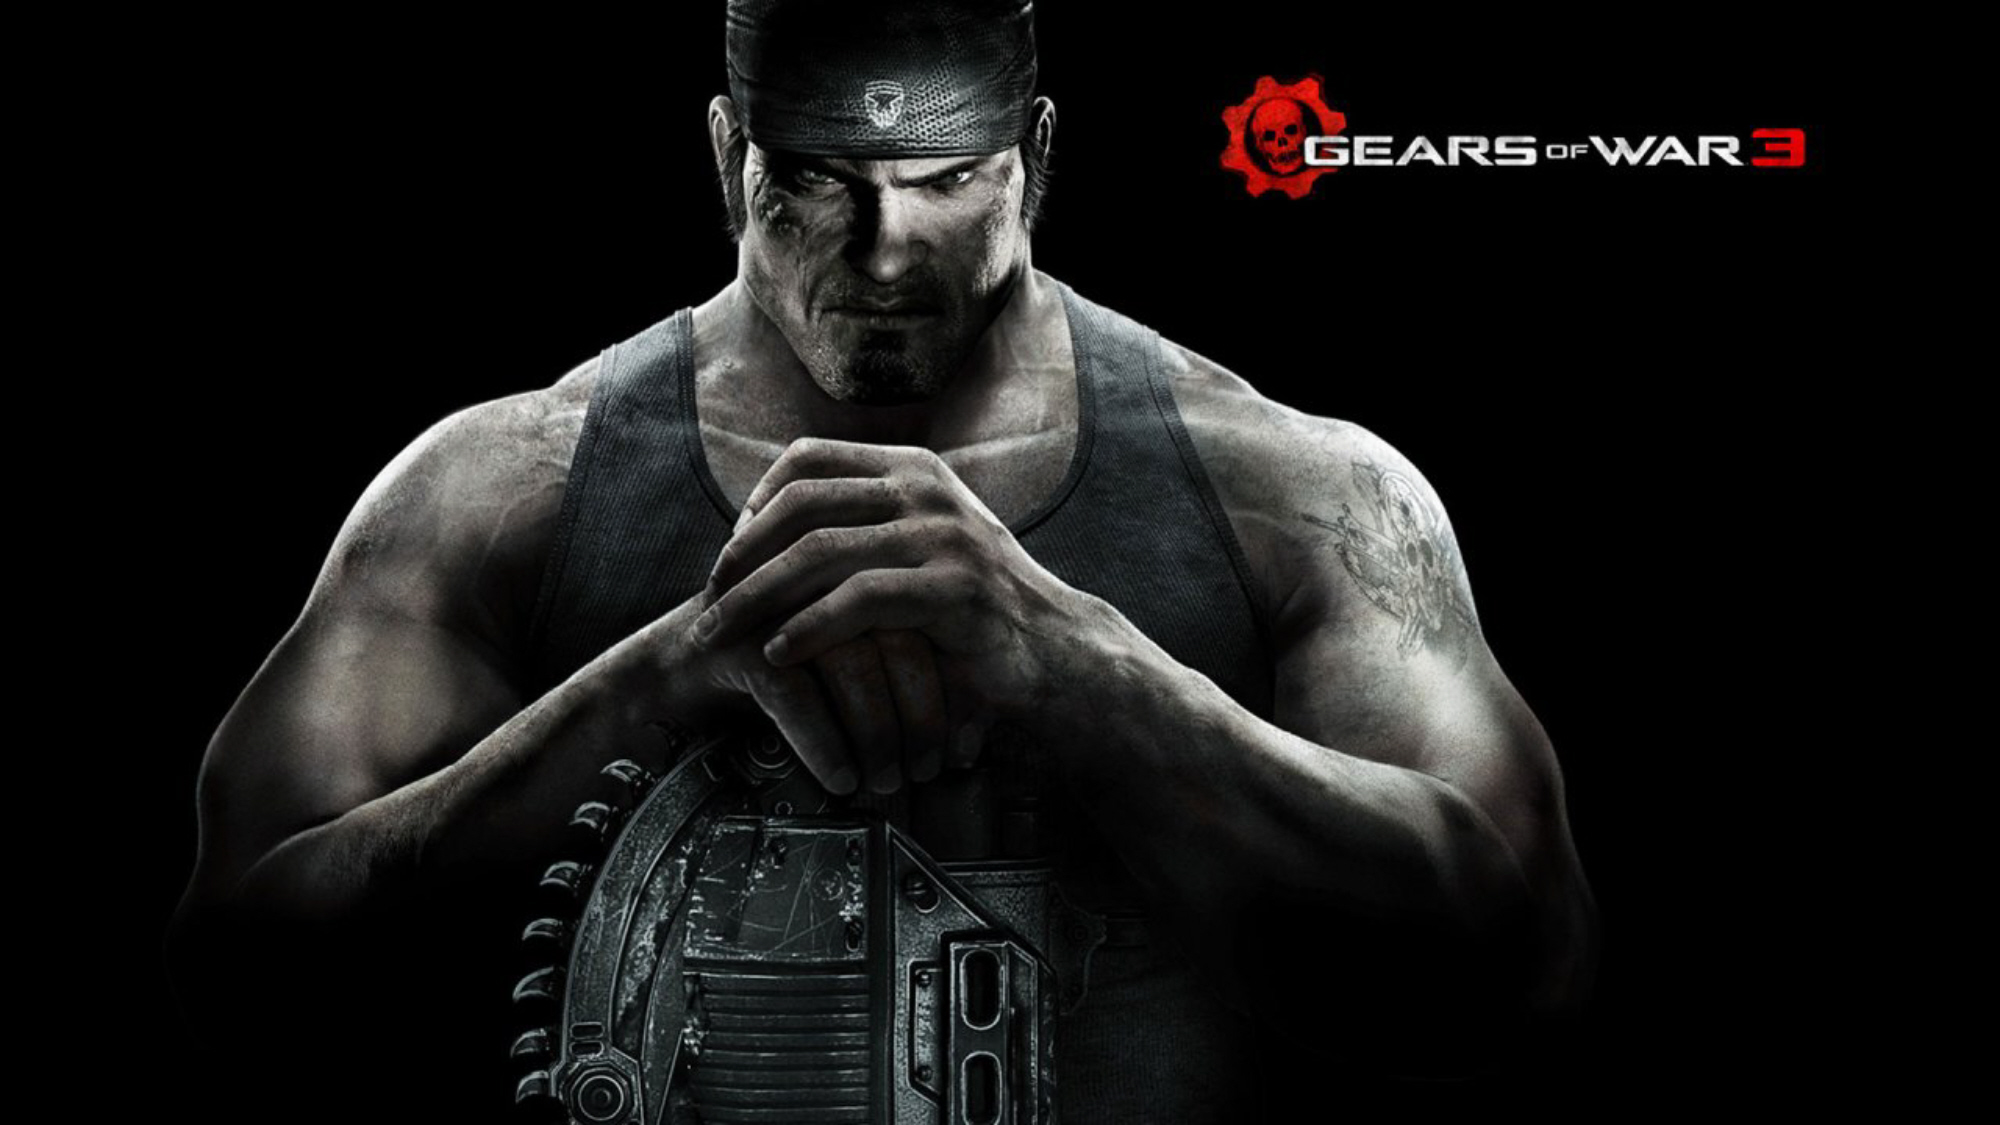 Gears Of War 3 Wallpaper Hd Video Games Blogger